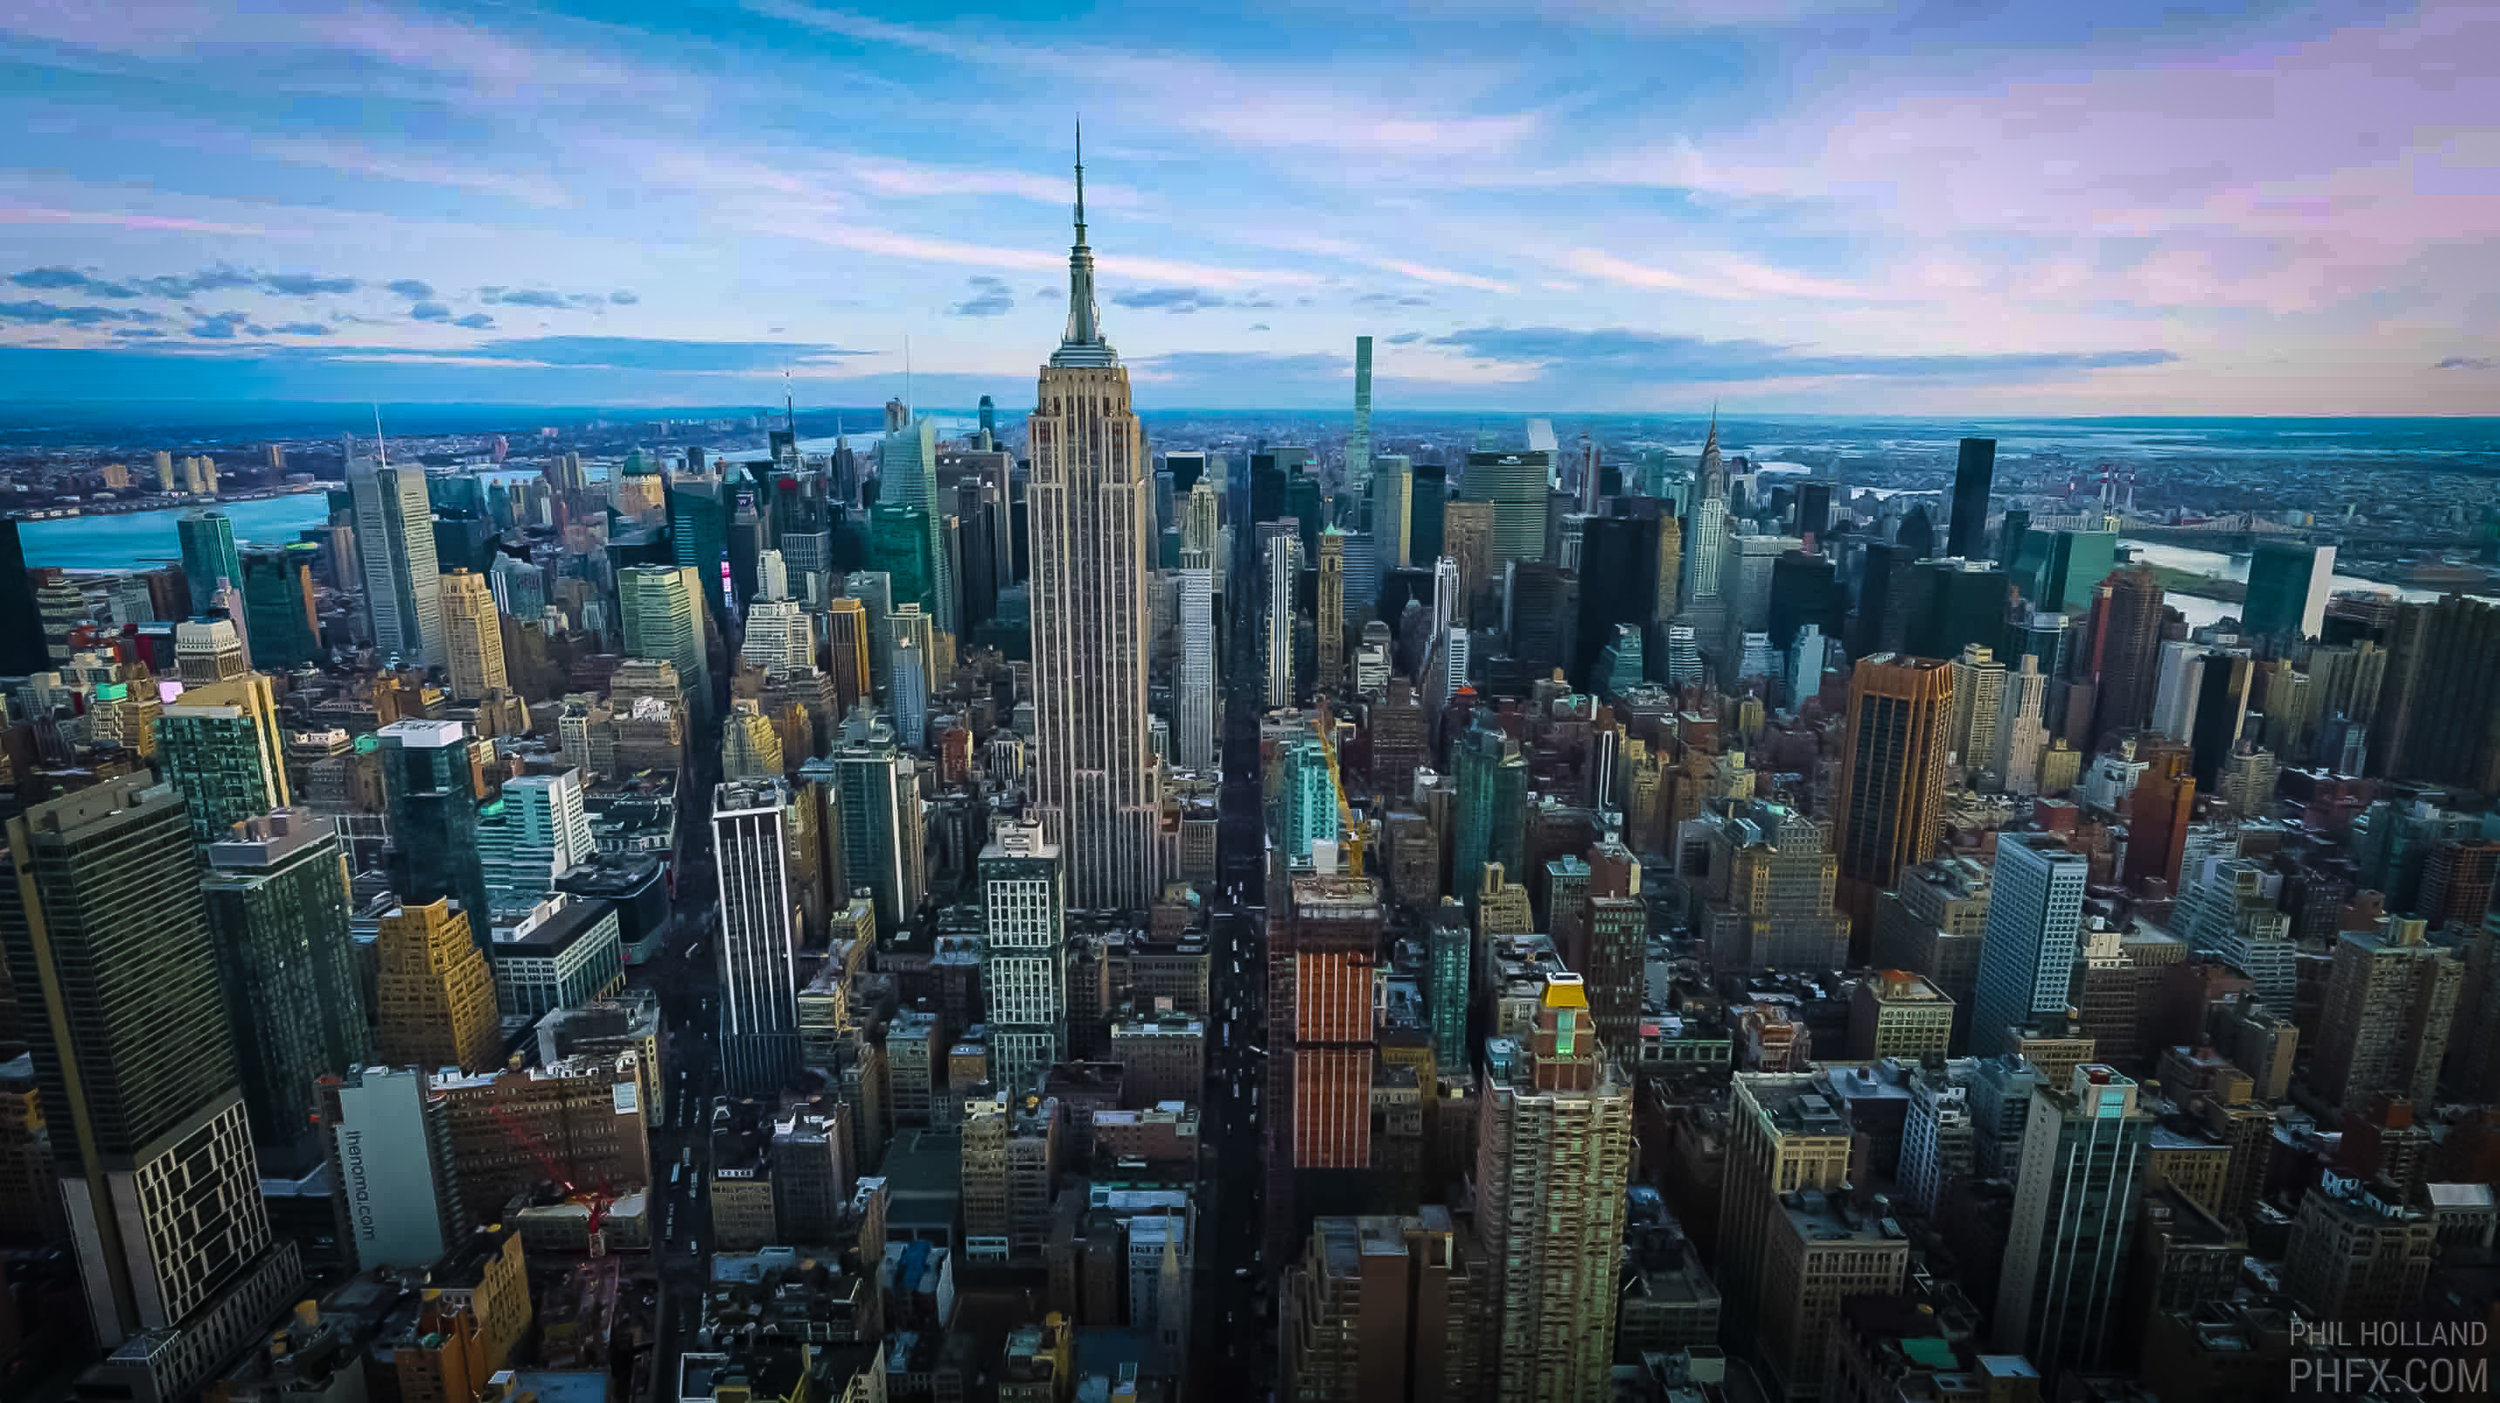 THE EMPIRES STATE BUILDING AND MIDTOWN MANHATTAN